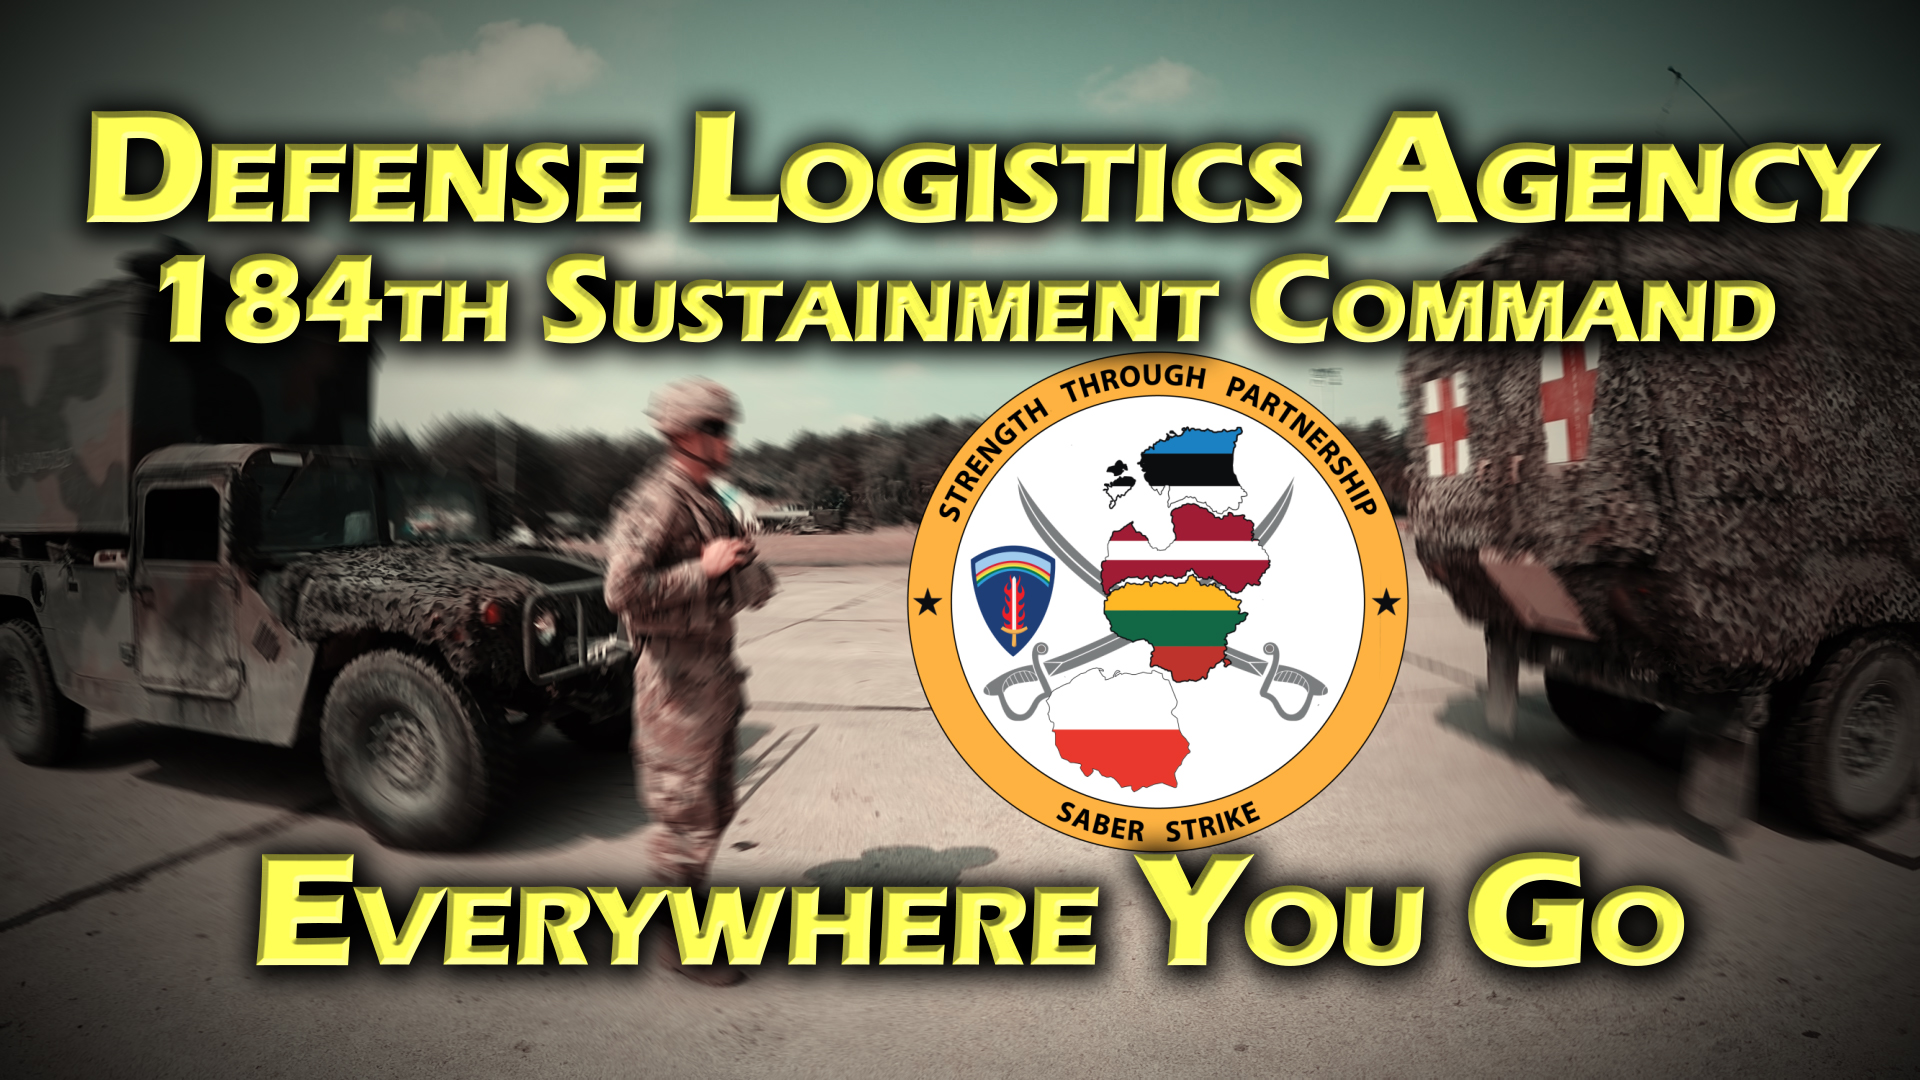 An image of 184th Sustainment Command operations